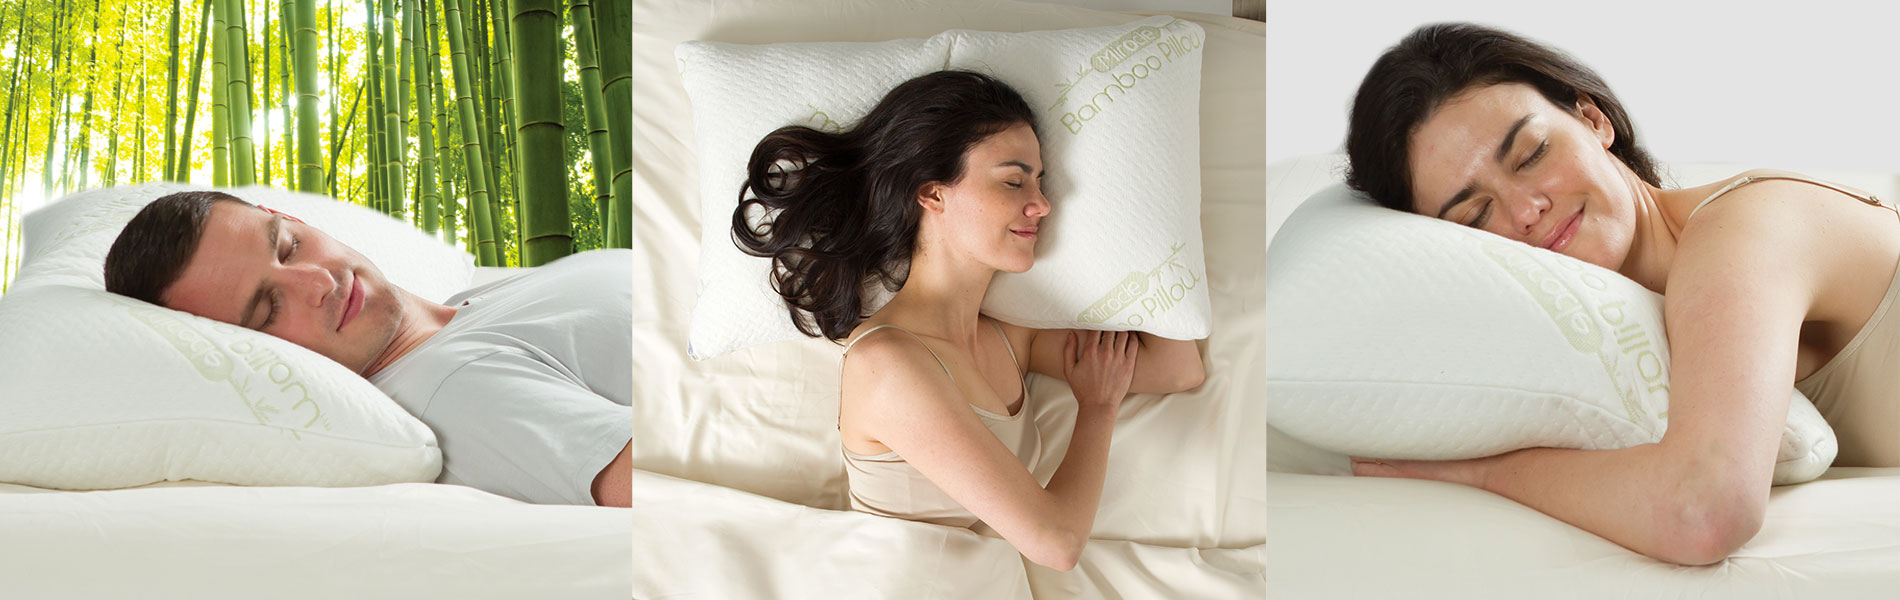 best miracle bamboo pillow review